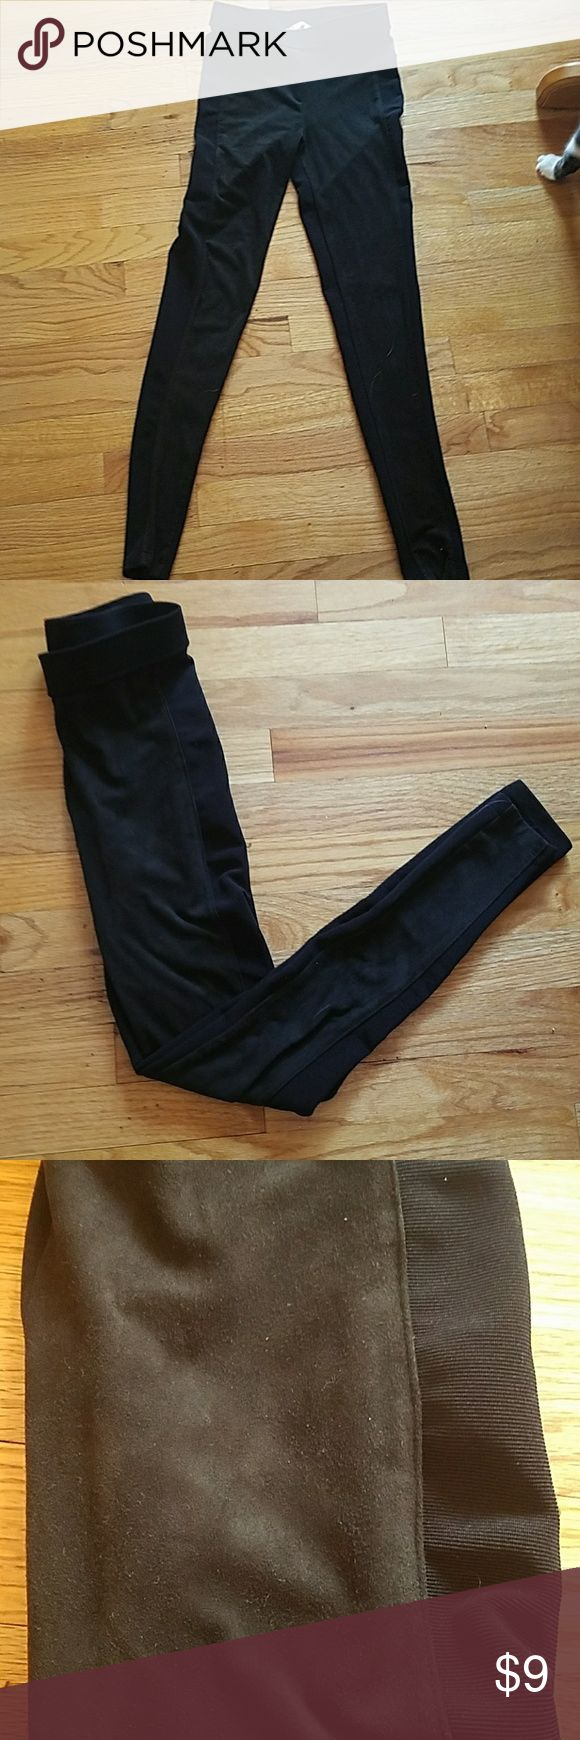 H&M Leggings size XS Black leggings from H&M  The front is suede and the back is normal legging material H&M Pants Leggings